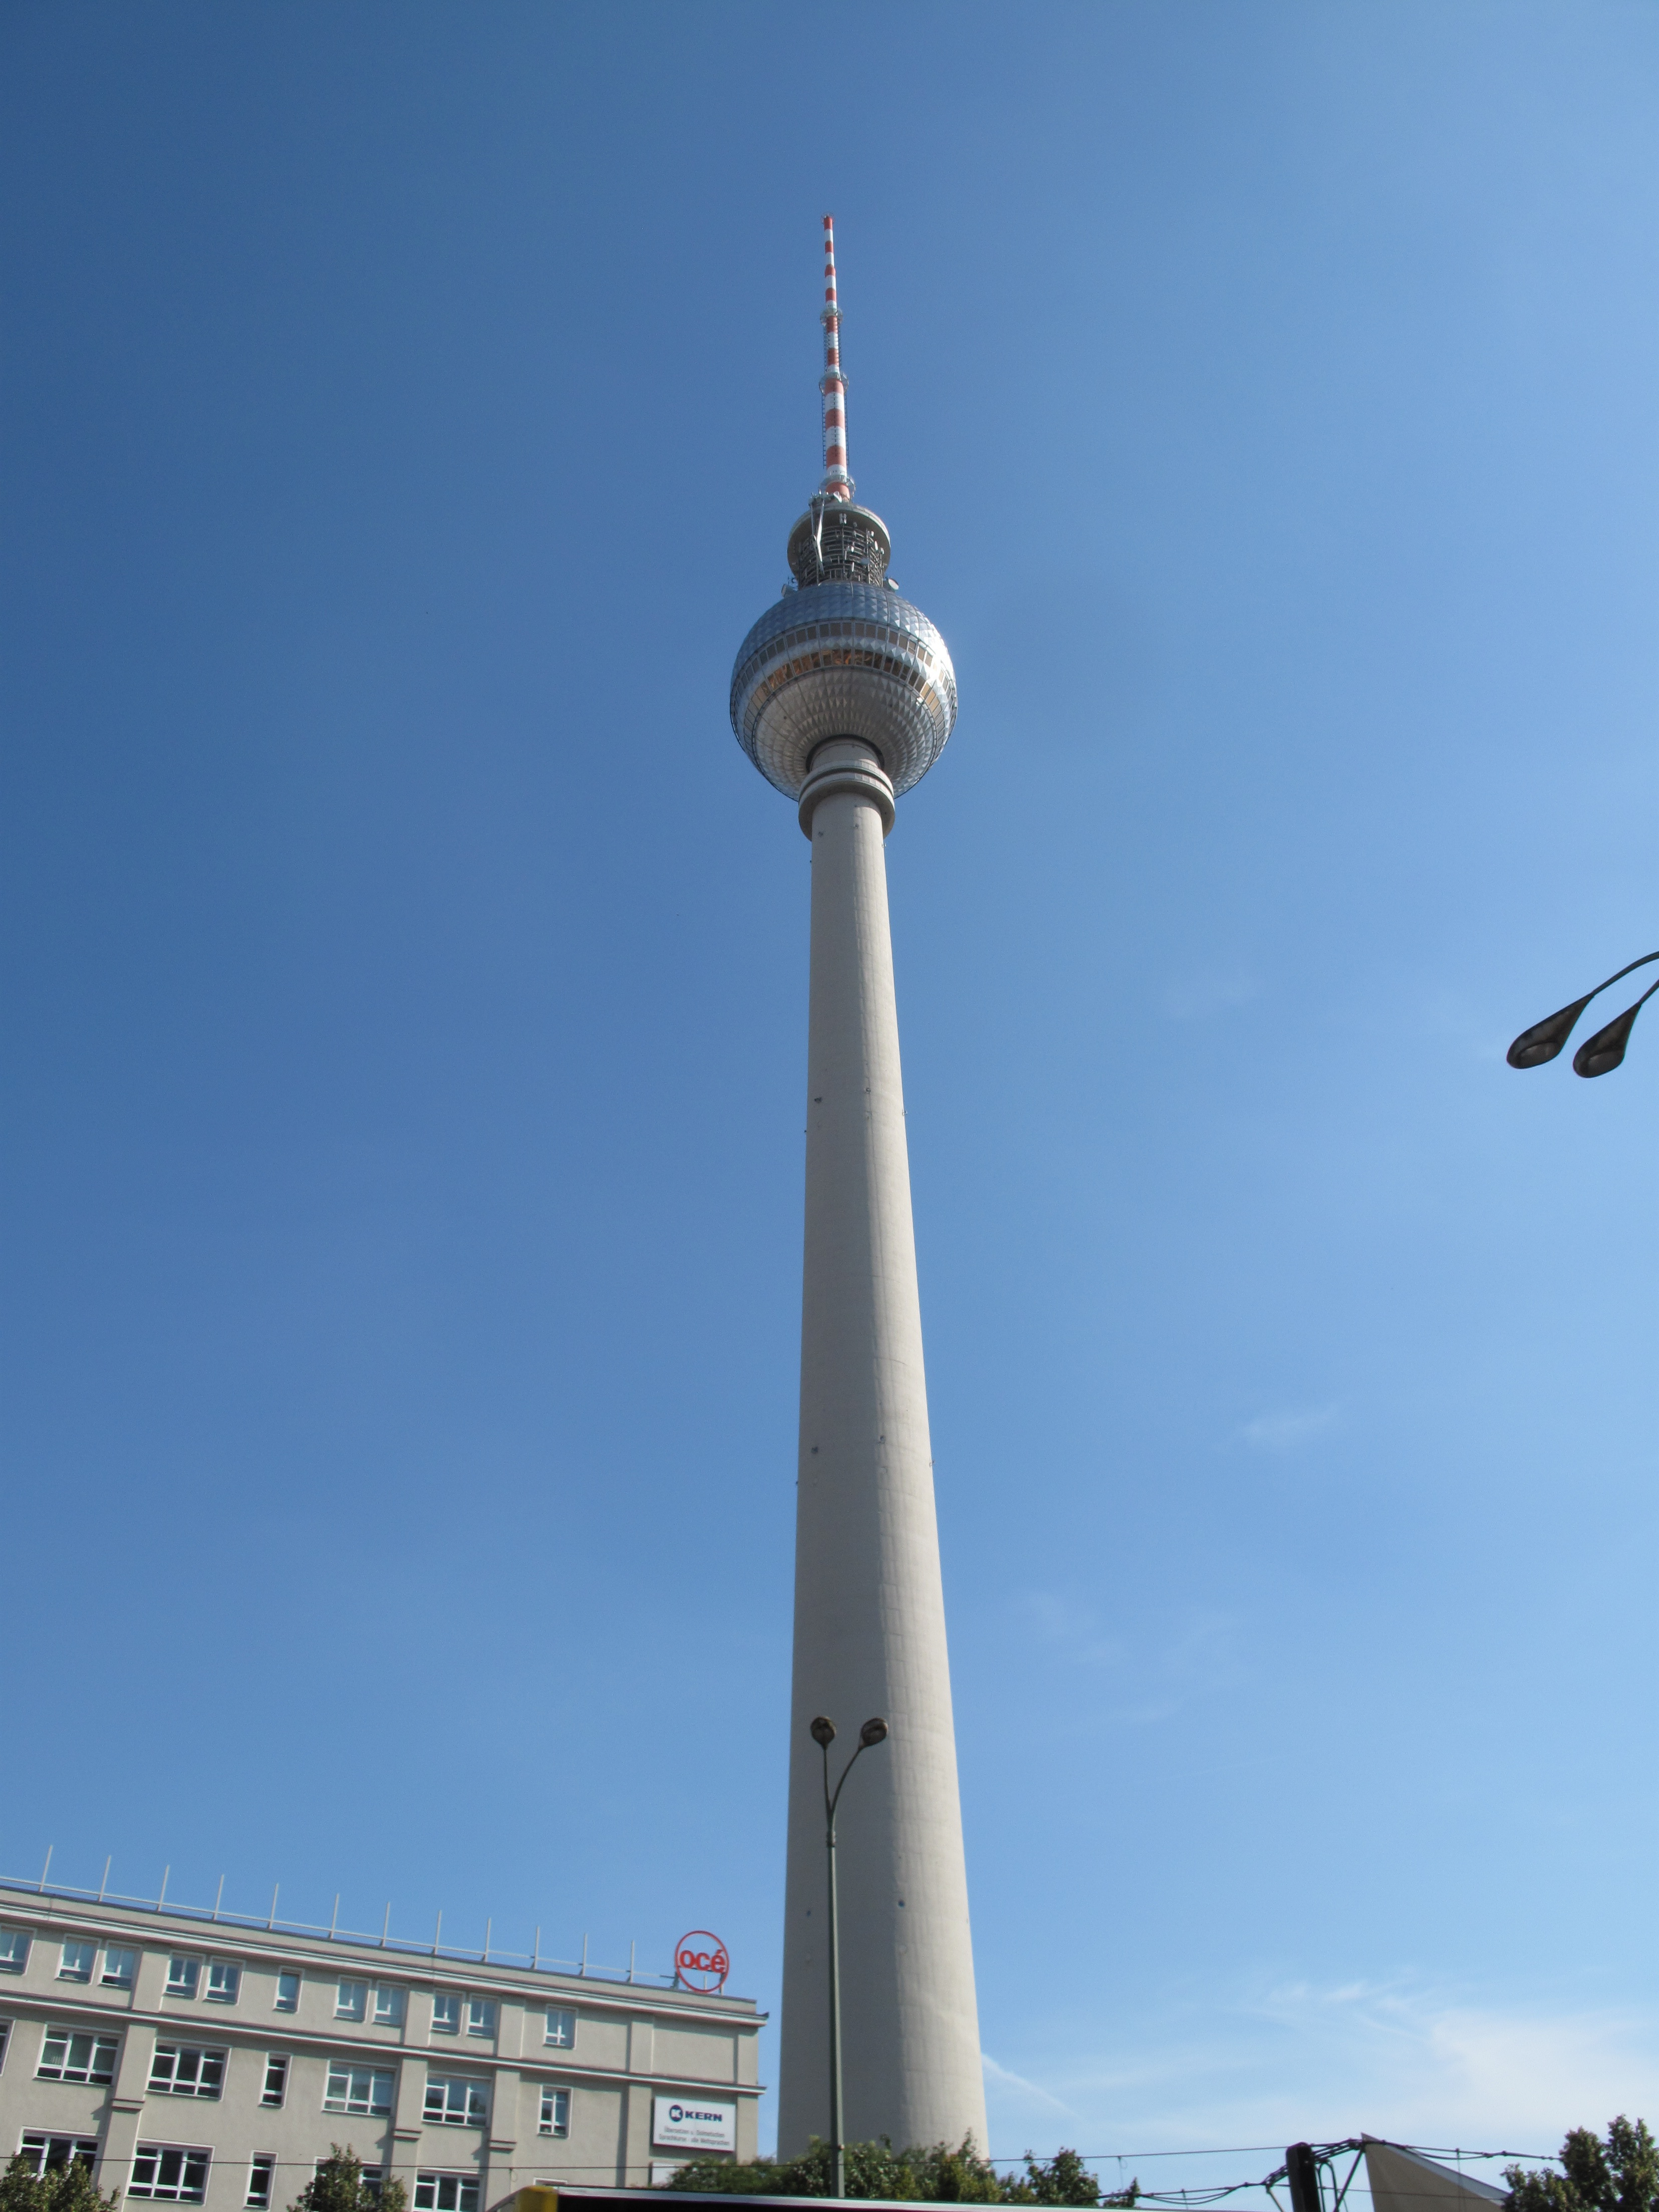 pin fernsehenturm from alexanderplatz a photo on. Black Bedroom Furniture Sets. Home Design Ideas